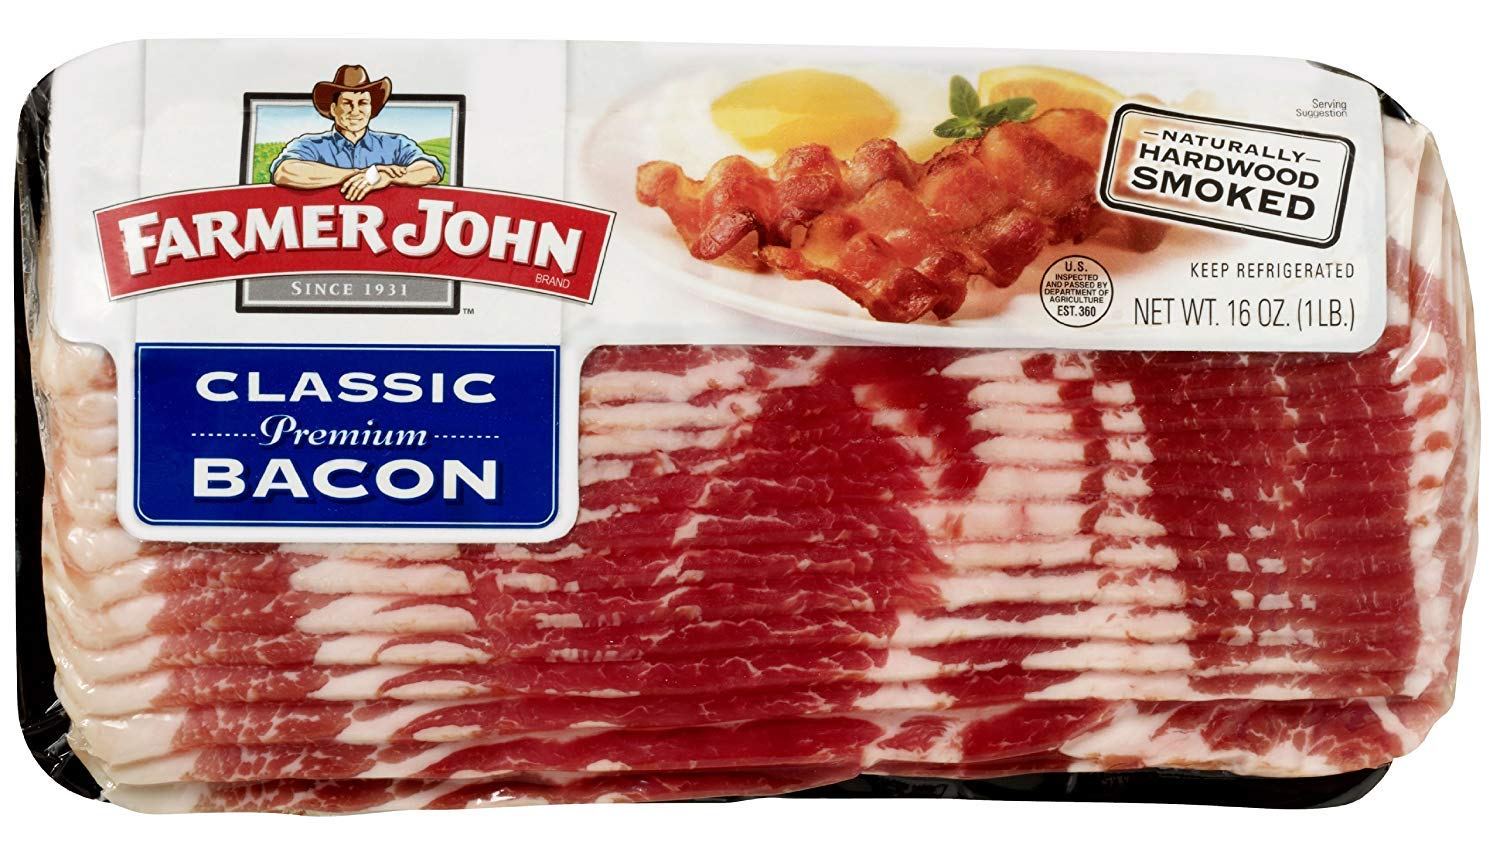 Farmer John Classic Premium Sliced Bacon 16oz. Package (Pack of 4) | Ship Frozen With Ice by Farmer John (Image #1)